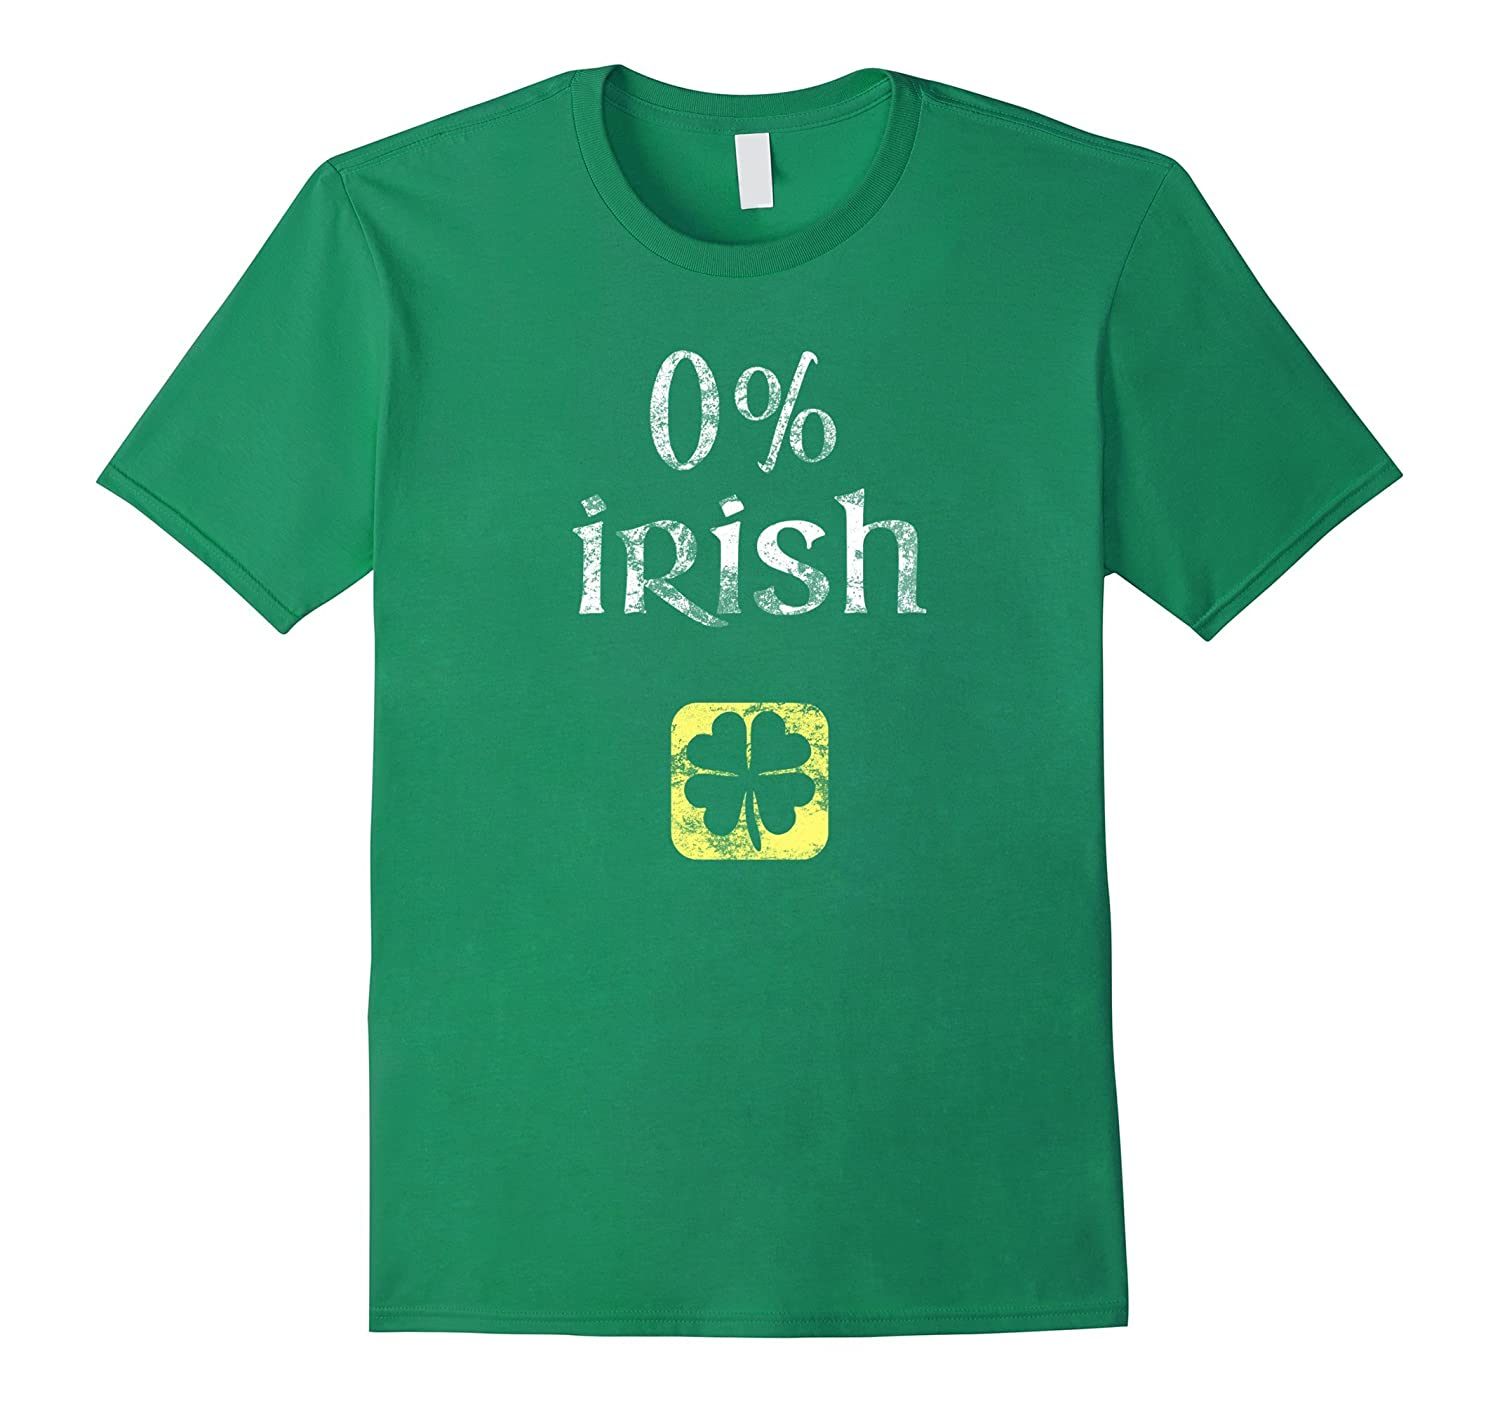 0 Percent Irish Funny Distressed St Patricks Day T-Shirt-TD